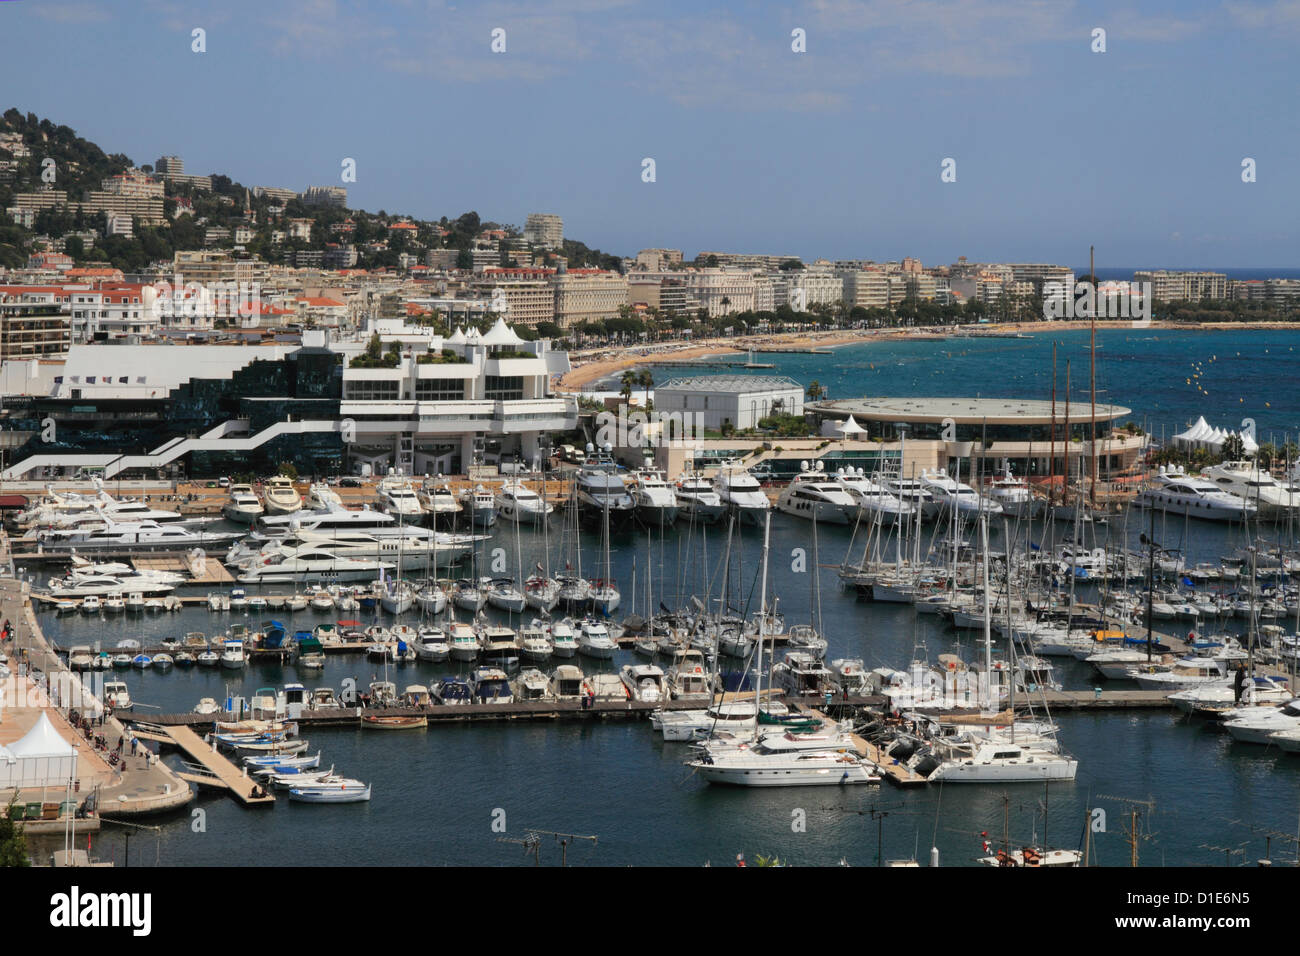 Casino and harbour, Cannes, Alpes Maritimes, Provence, Cote d'Azur, French Riviera, France, Mediterranean, Europe - Stock Image